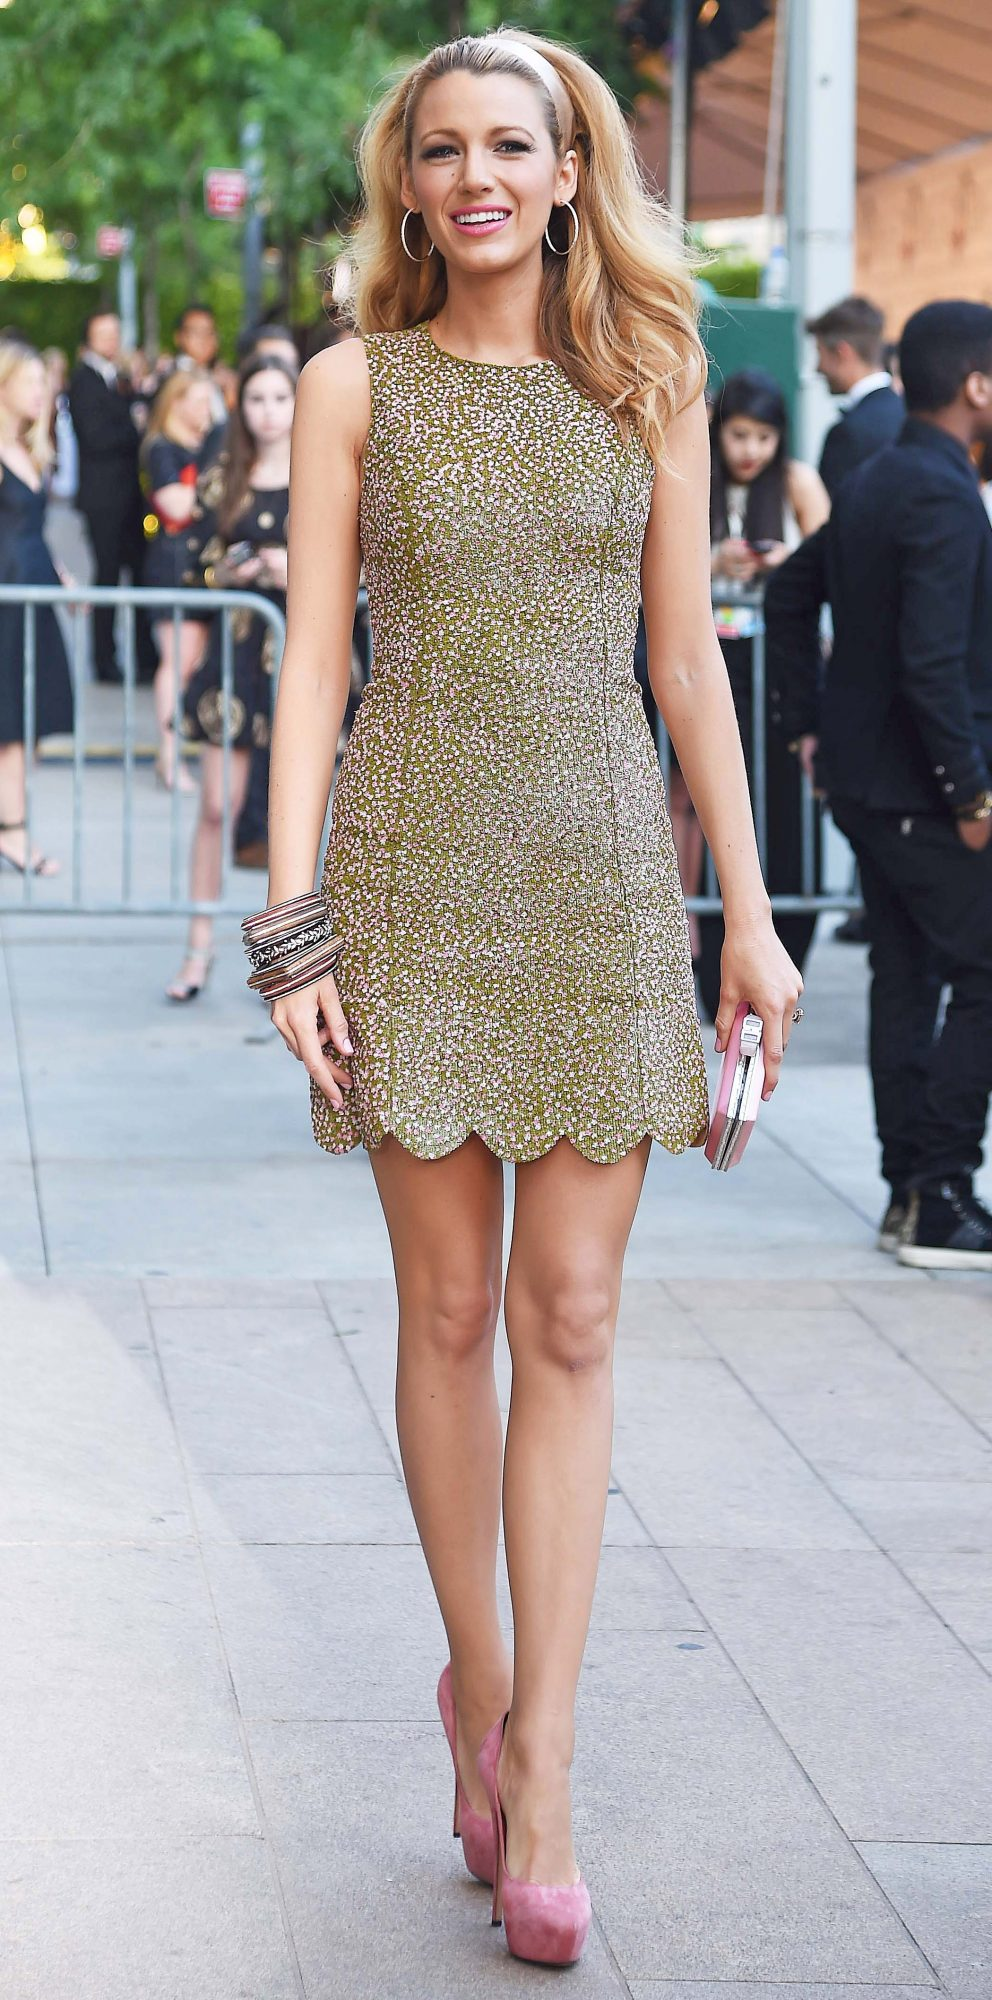 In Michael Kors, 2014